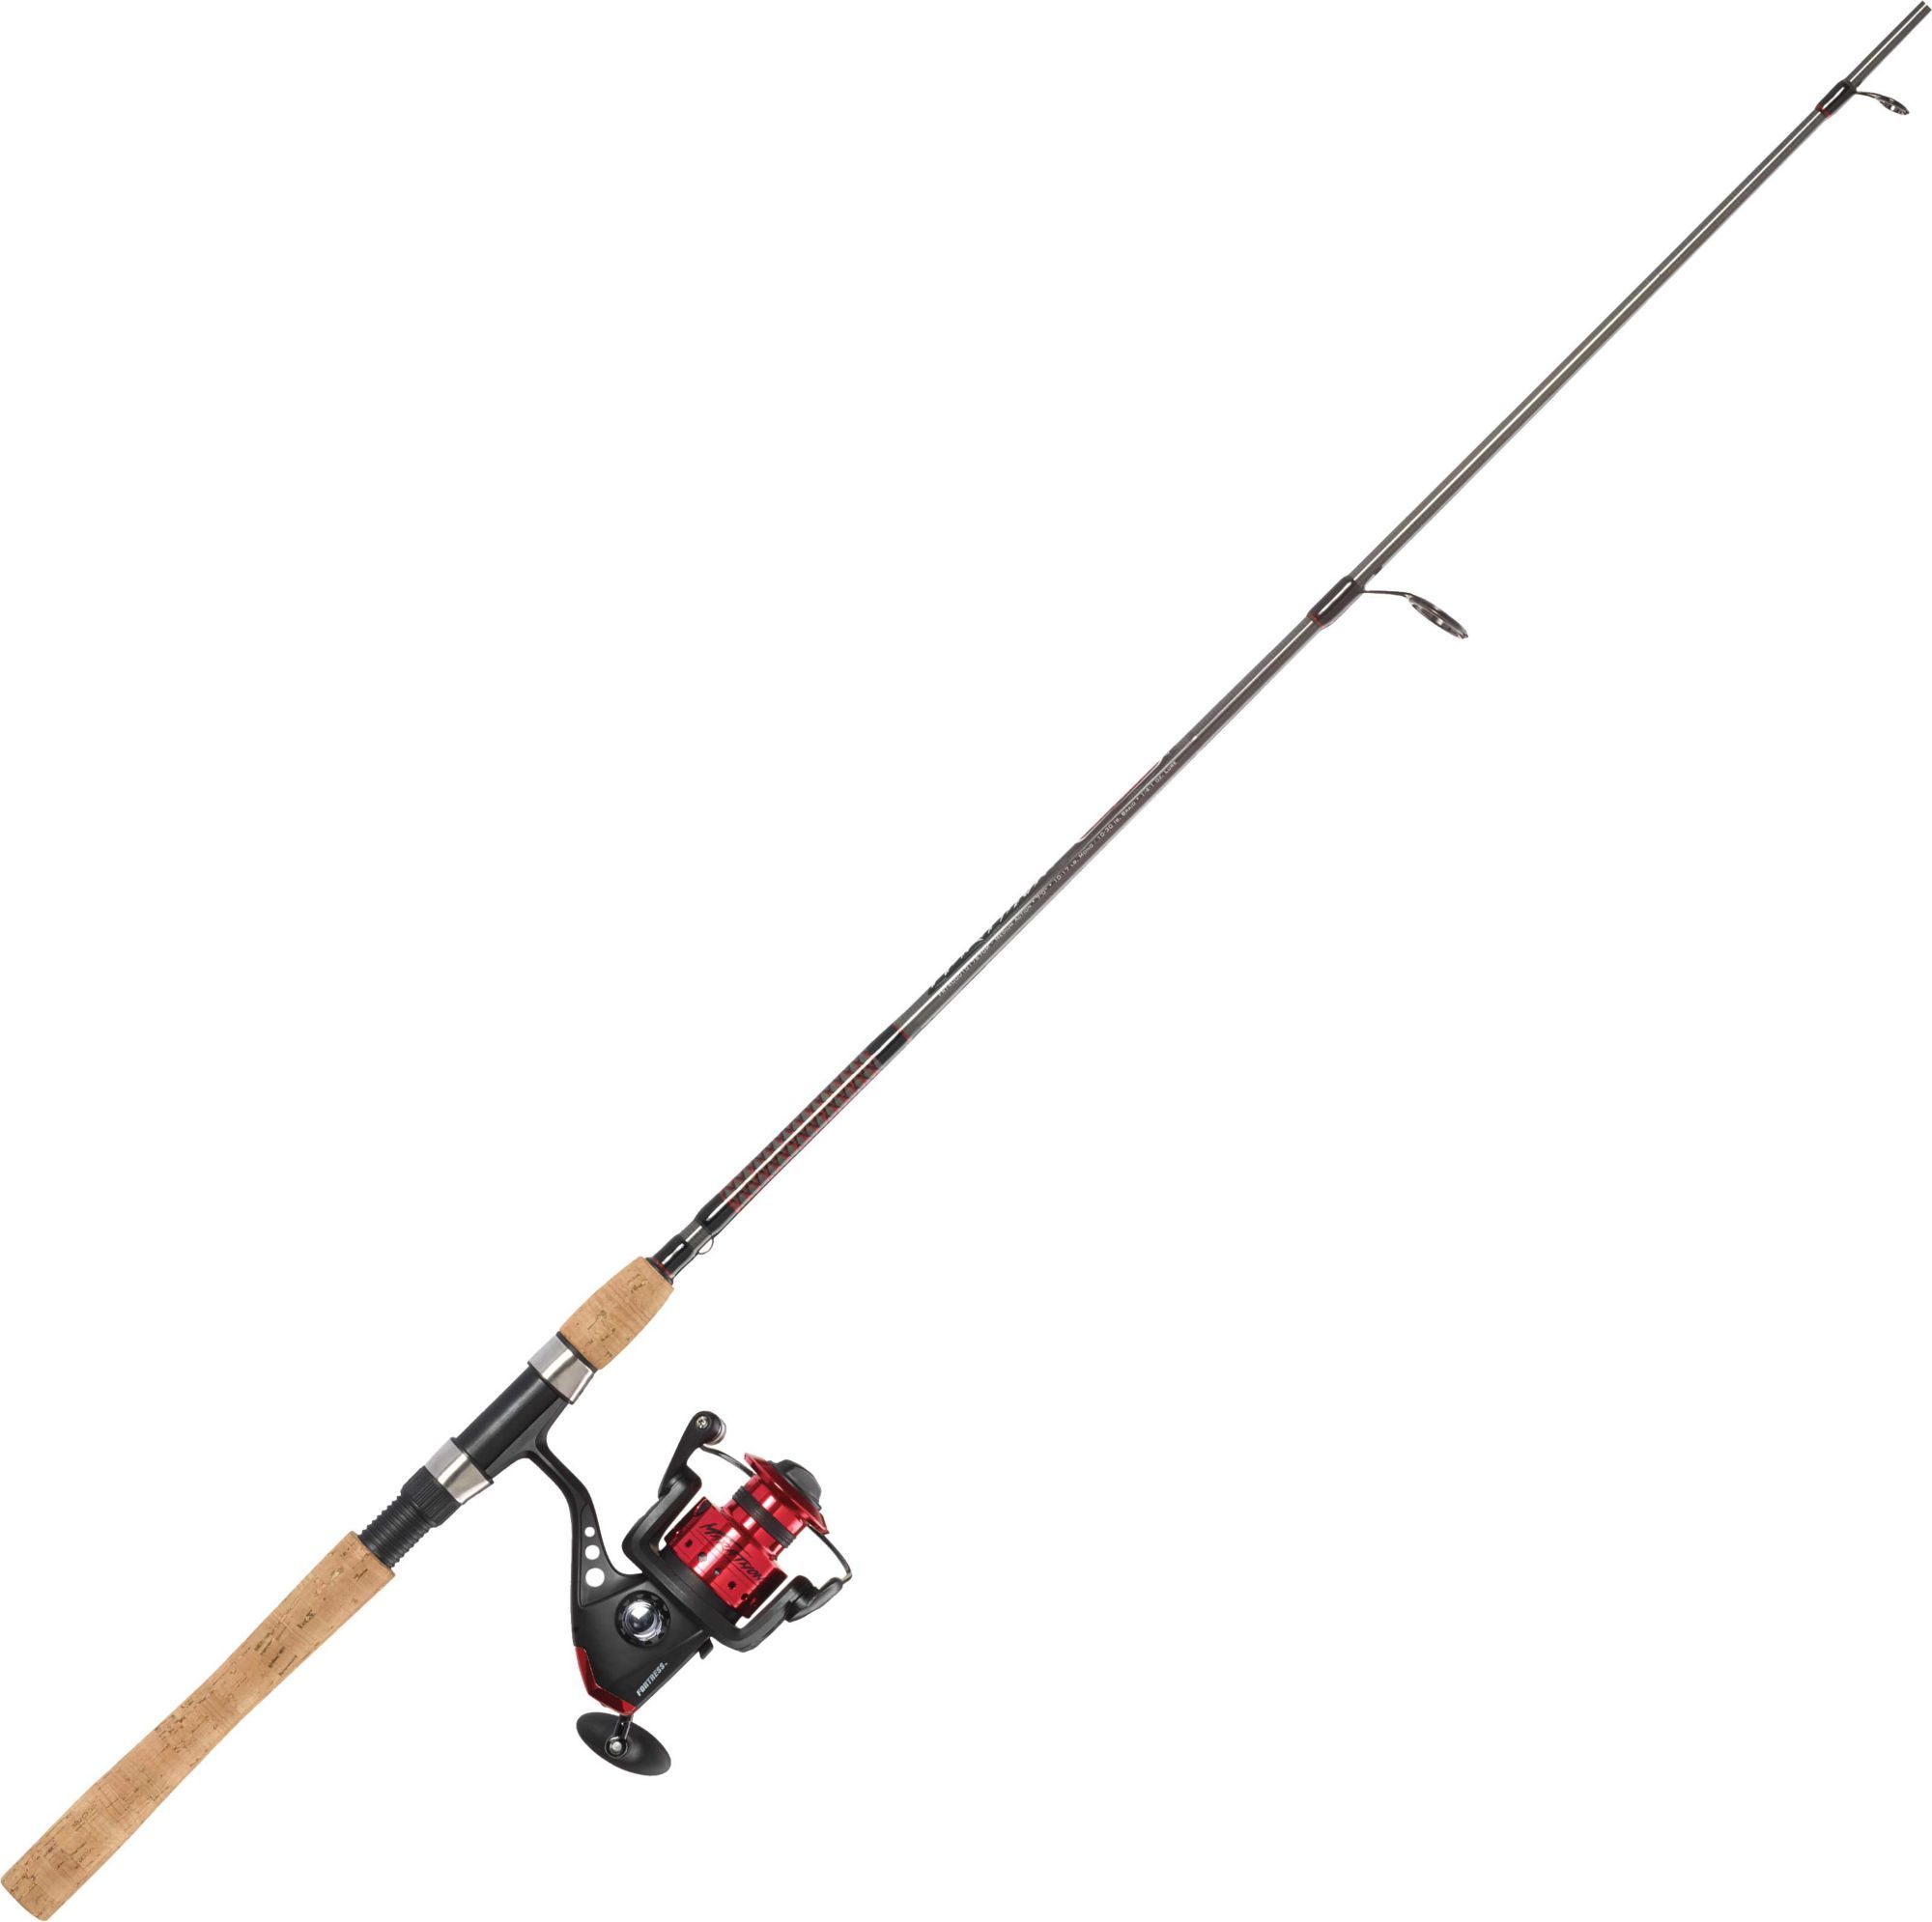 Marathon Fortress 2 Piece Spinning Combo Silver Fishing Fishing Tips Fishing Gear Fishing Hacks Fishing Lures Ba Marathon Canoe Fishing Bass Fishing